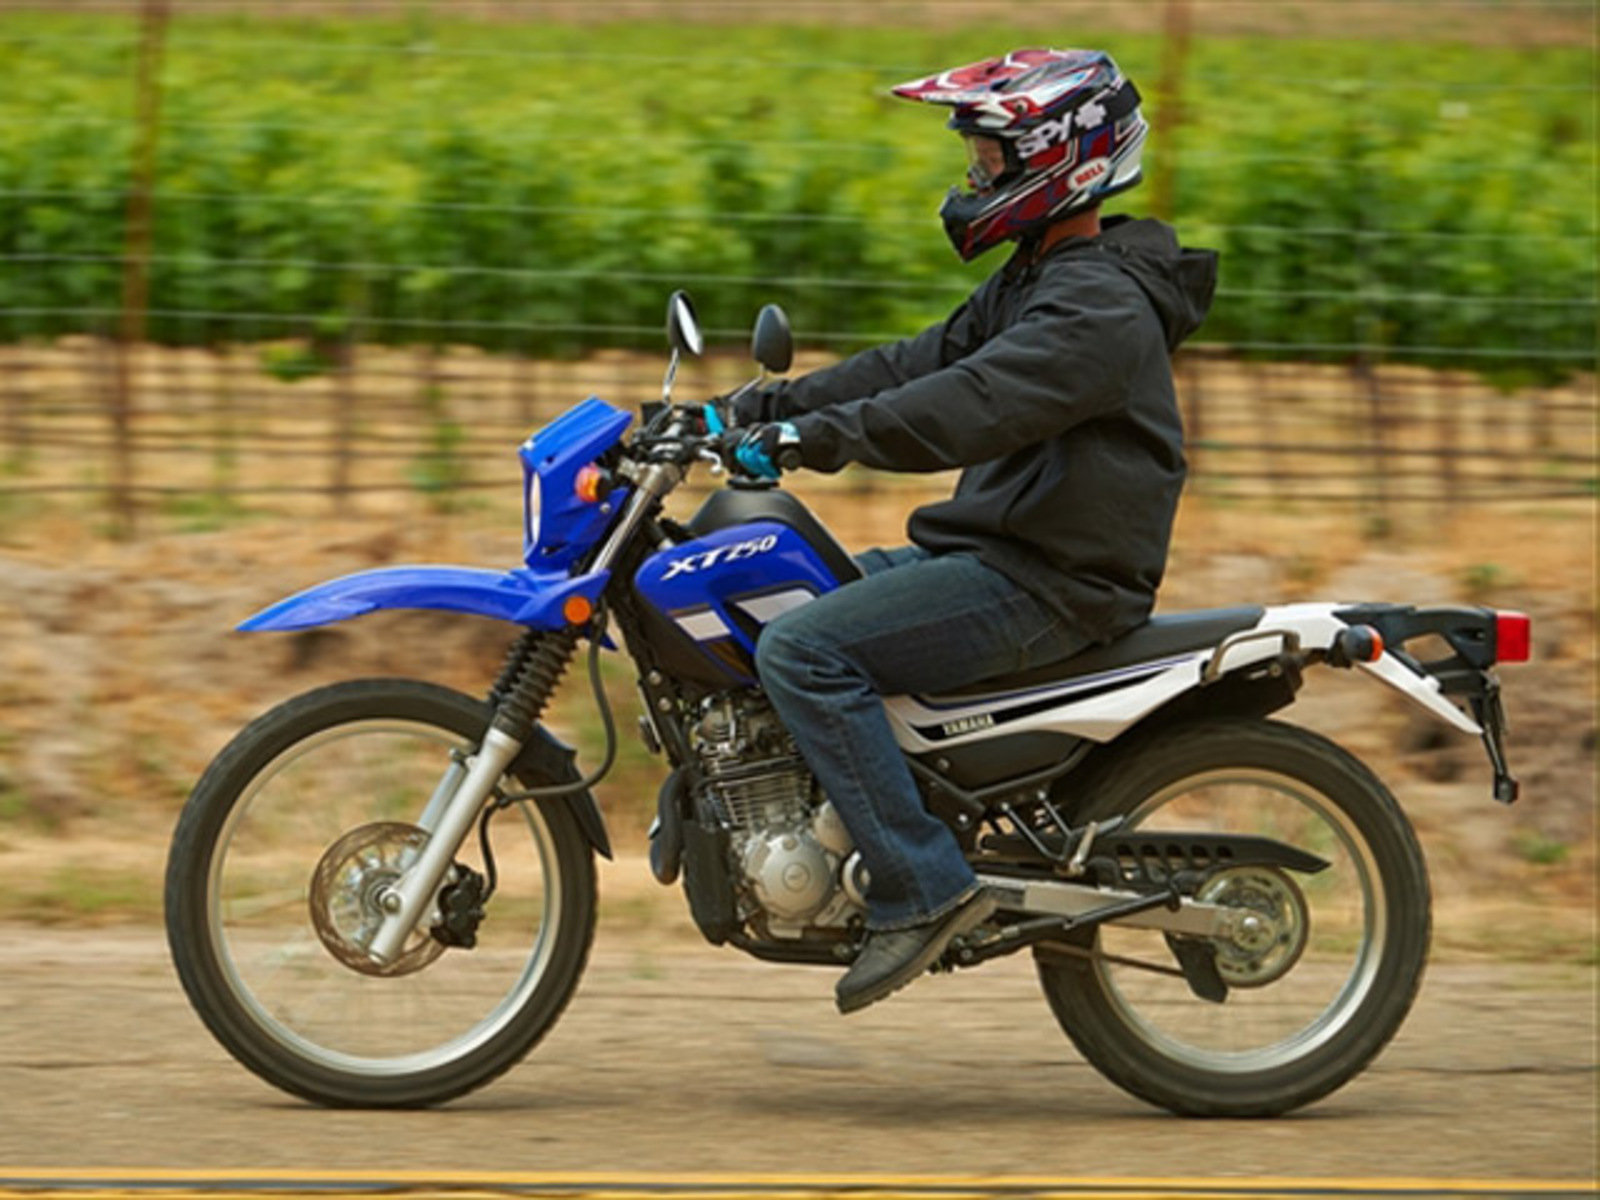 Yamaha Issues Recall Of Xt250 Over Multitude Of Problems